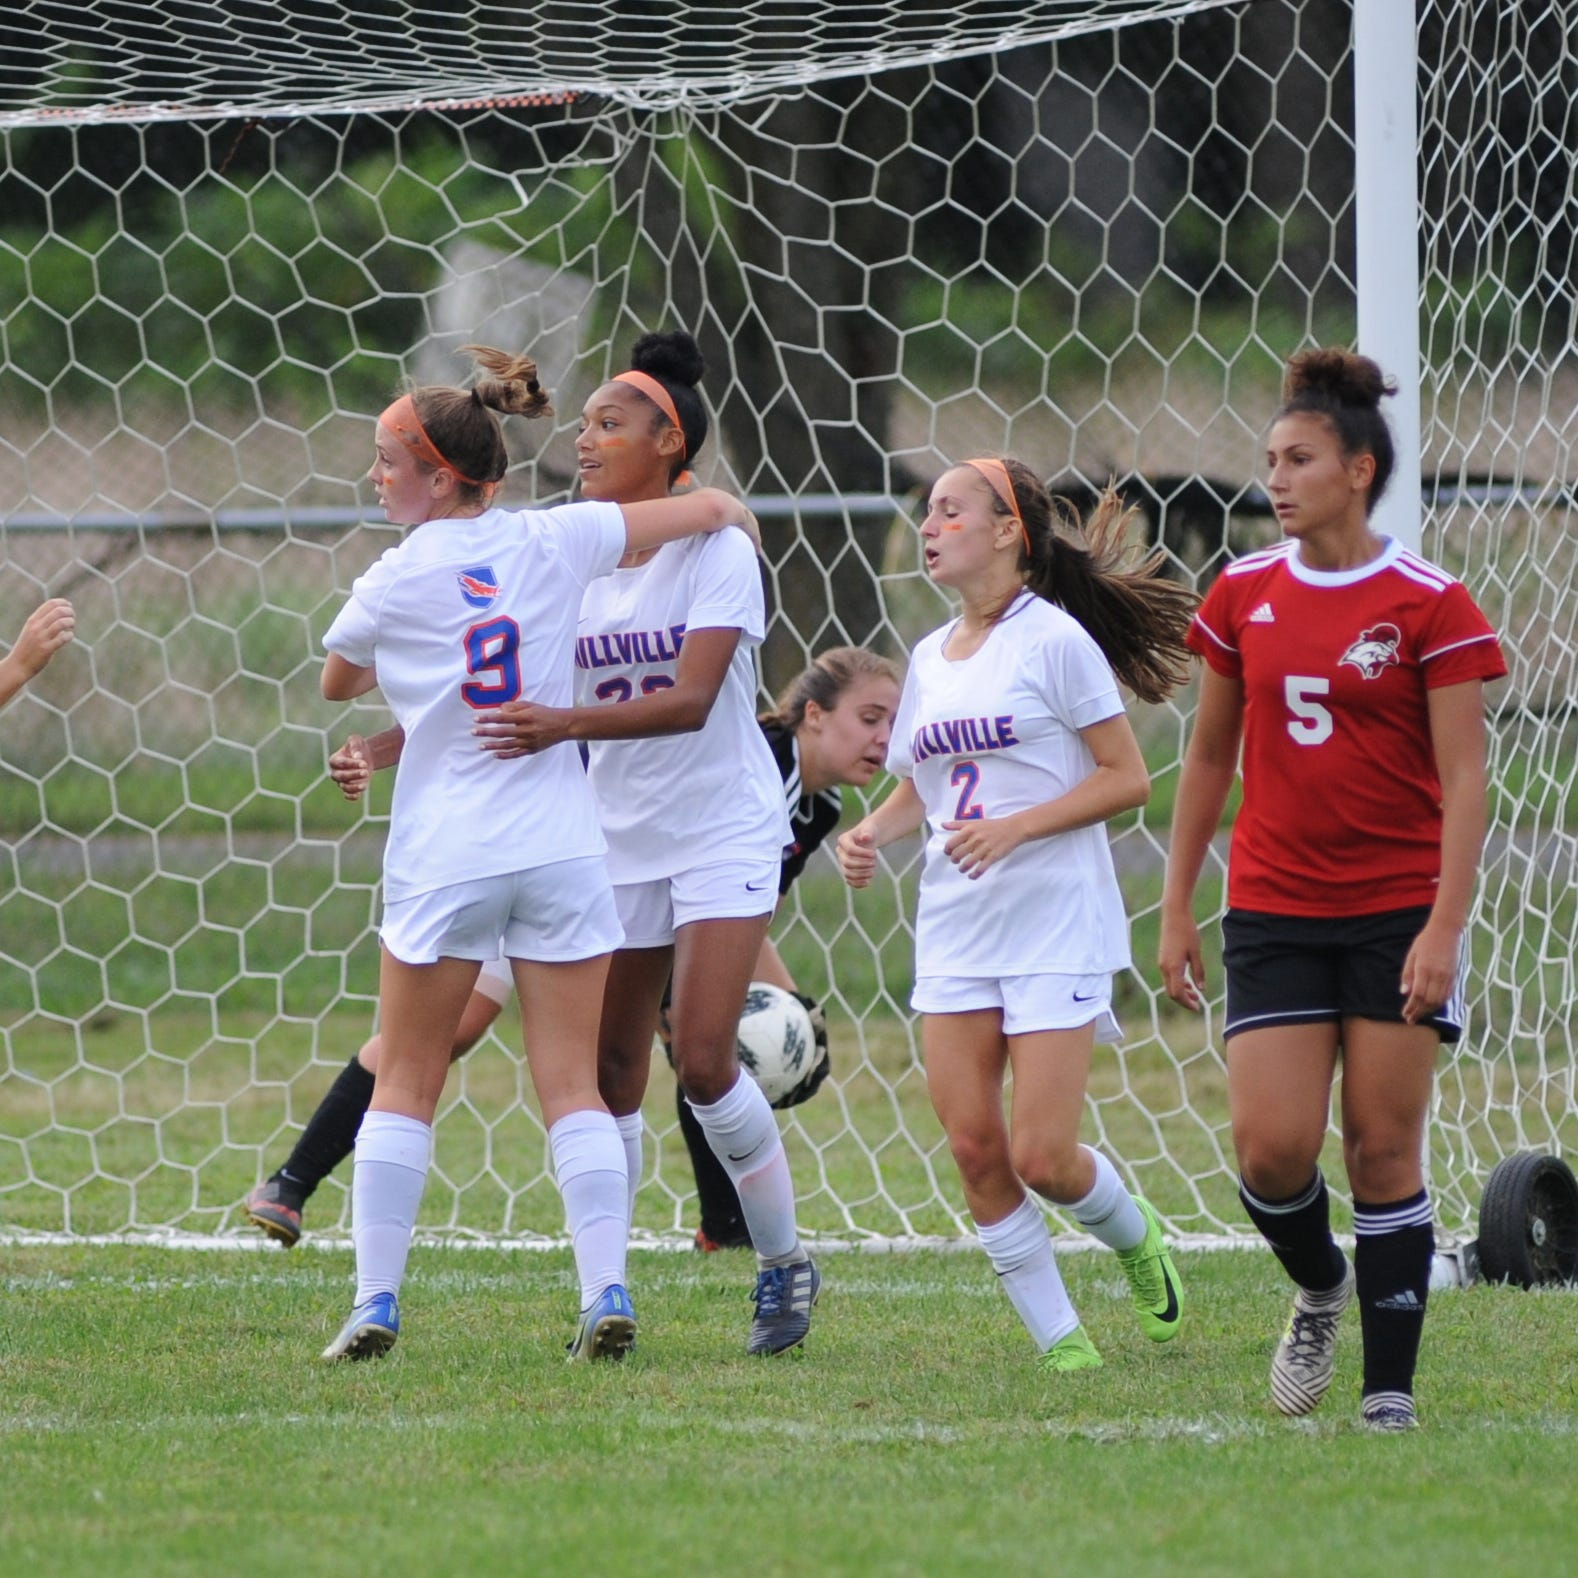 H.S. girls' soccer: Kelsey Andres helps lead Millville to more success